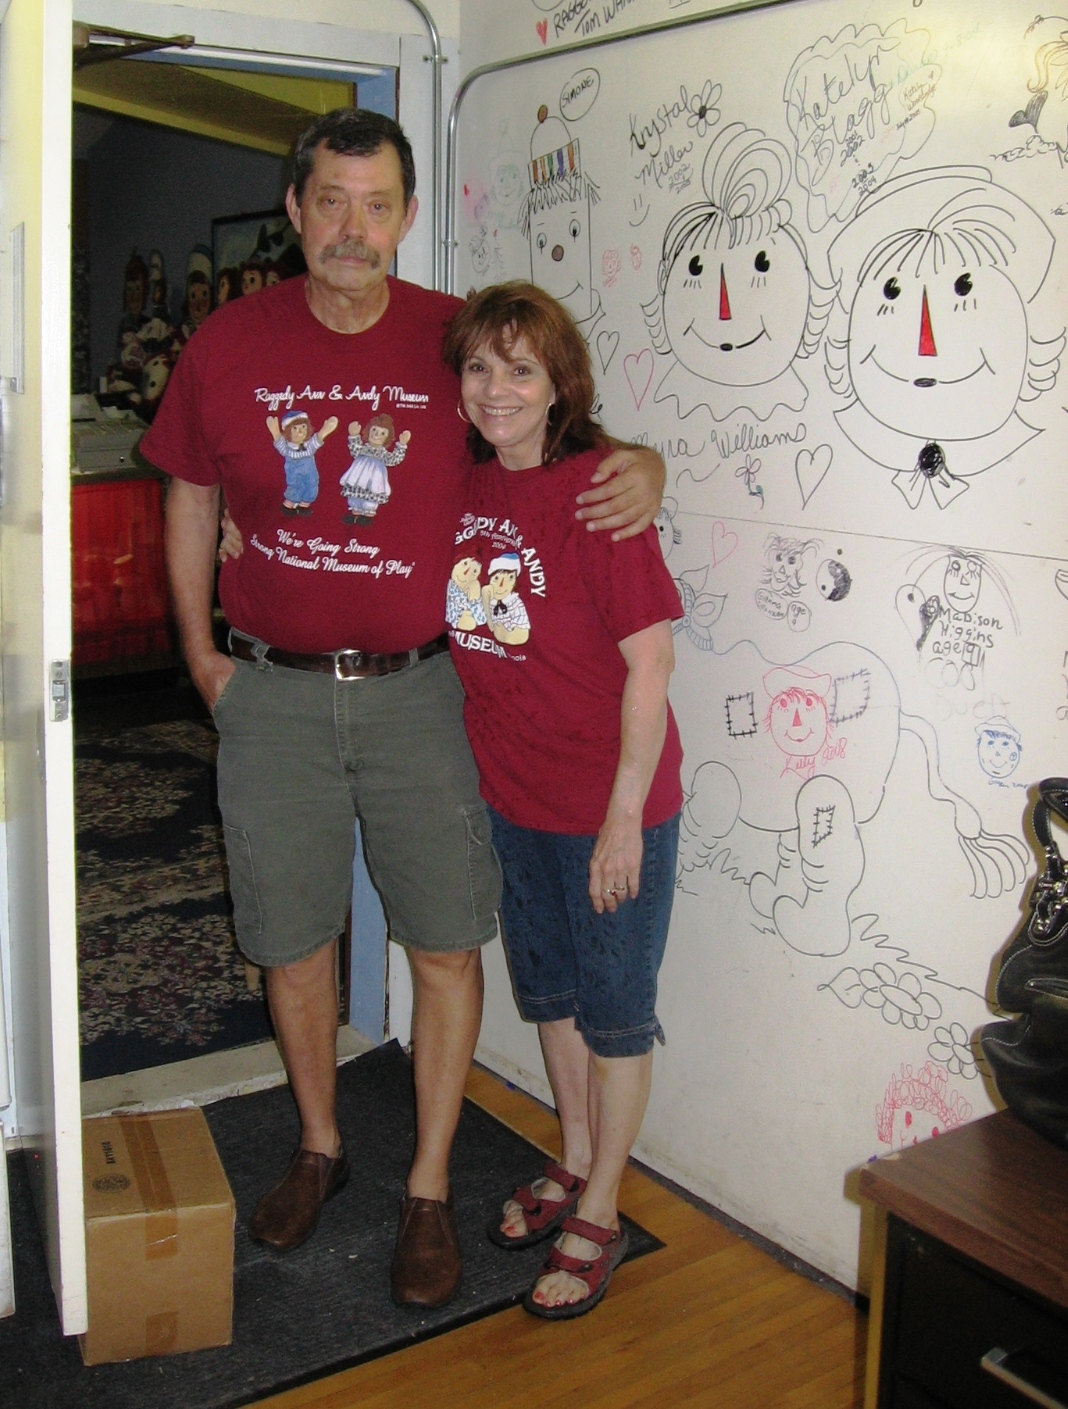 Our best friends in Arcola, Tom and Joni Wannamaker, pose by a wall of artwork inspired by Johnny Gruelle's illustrations.